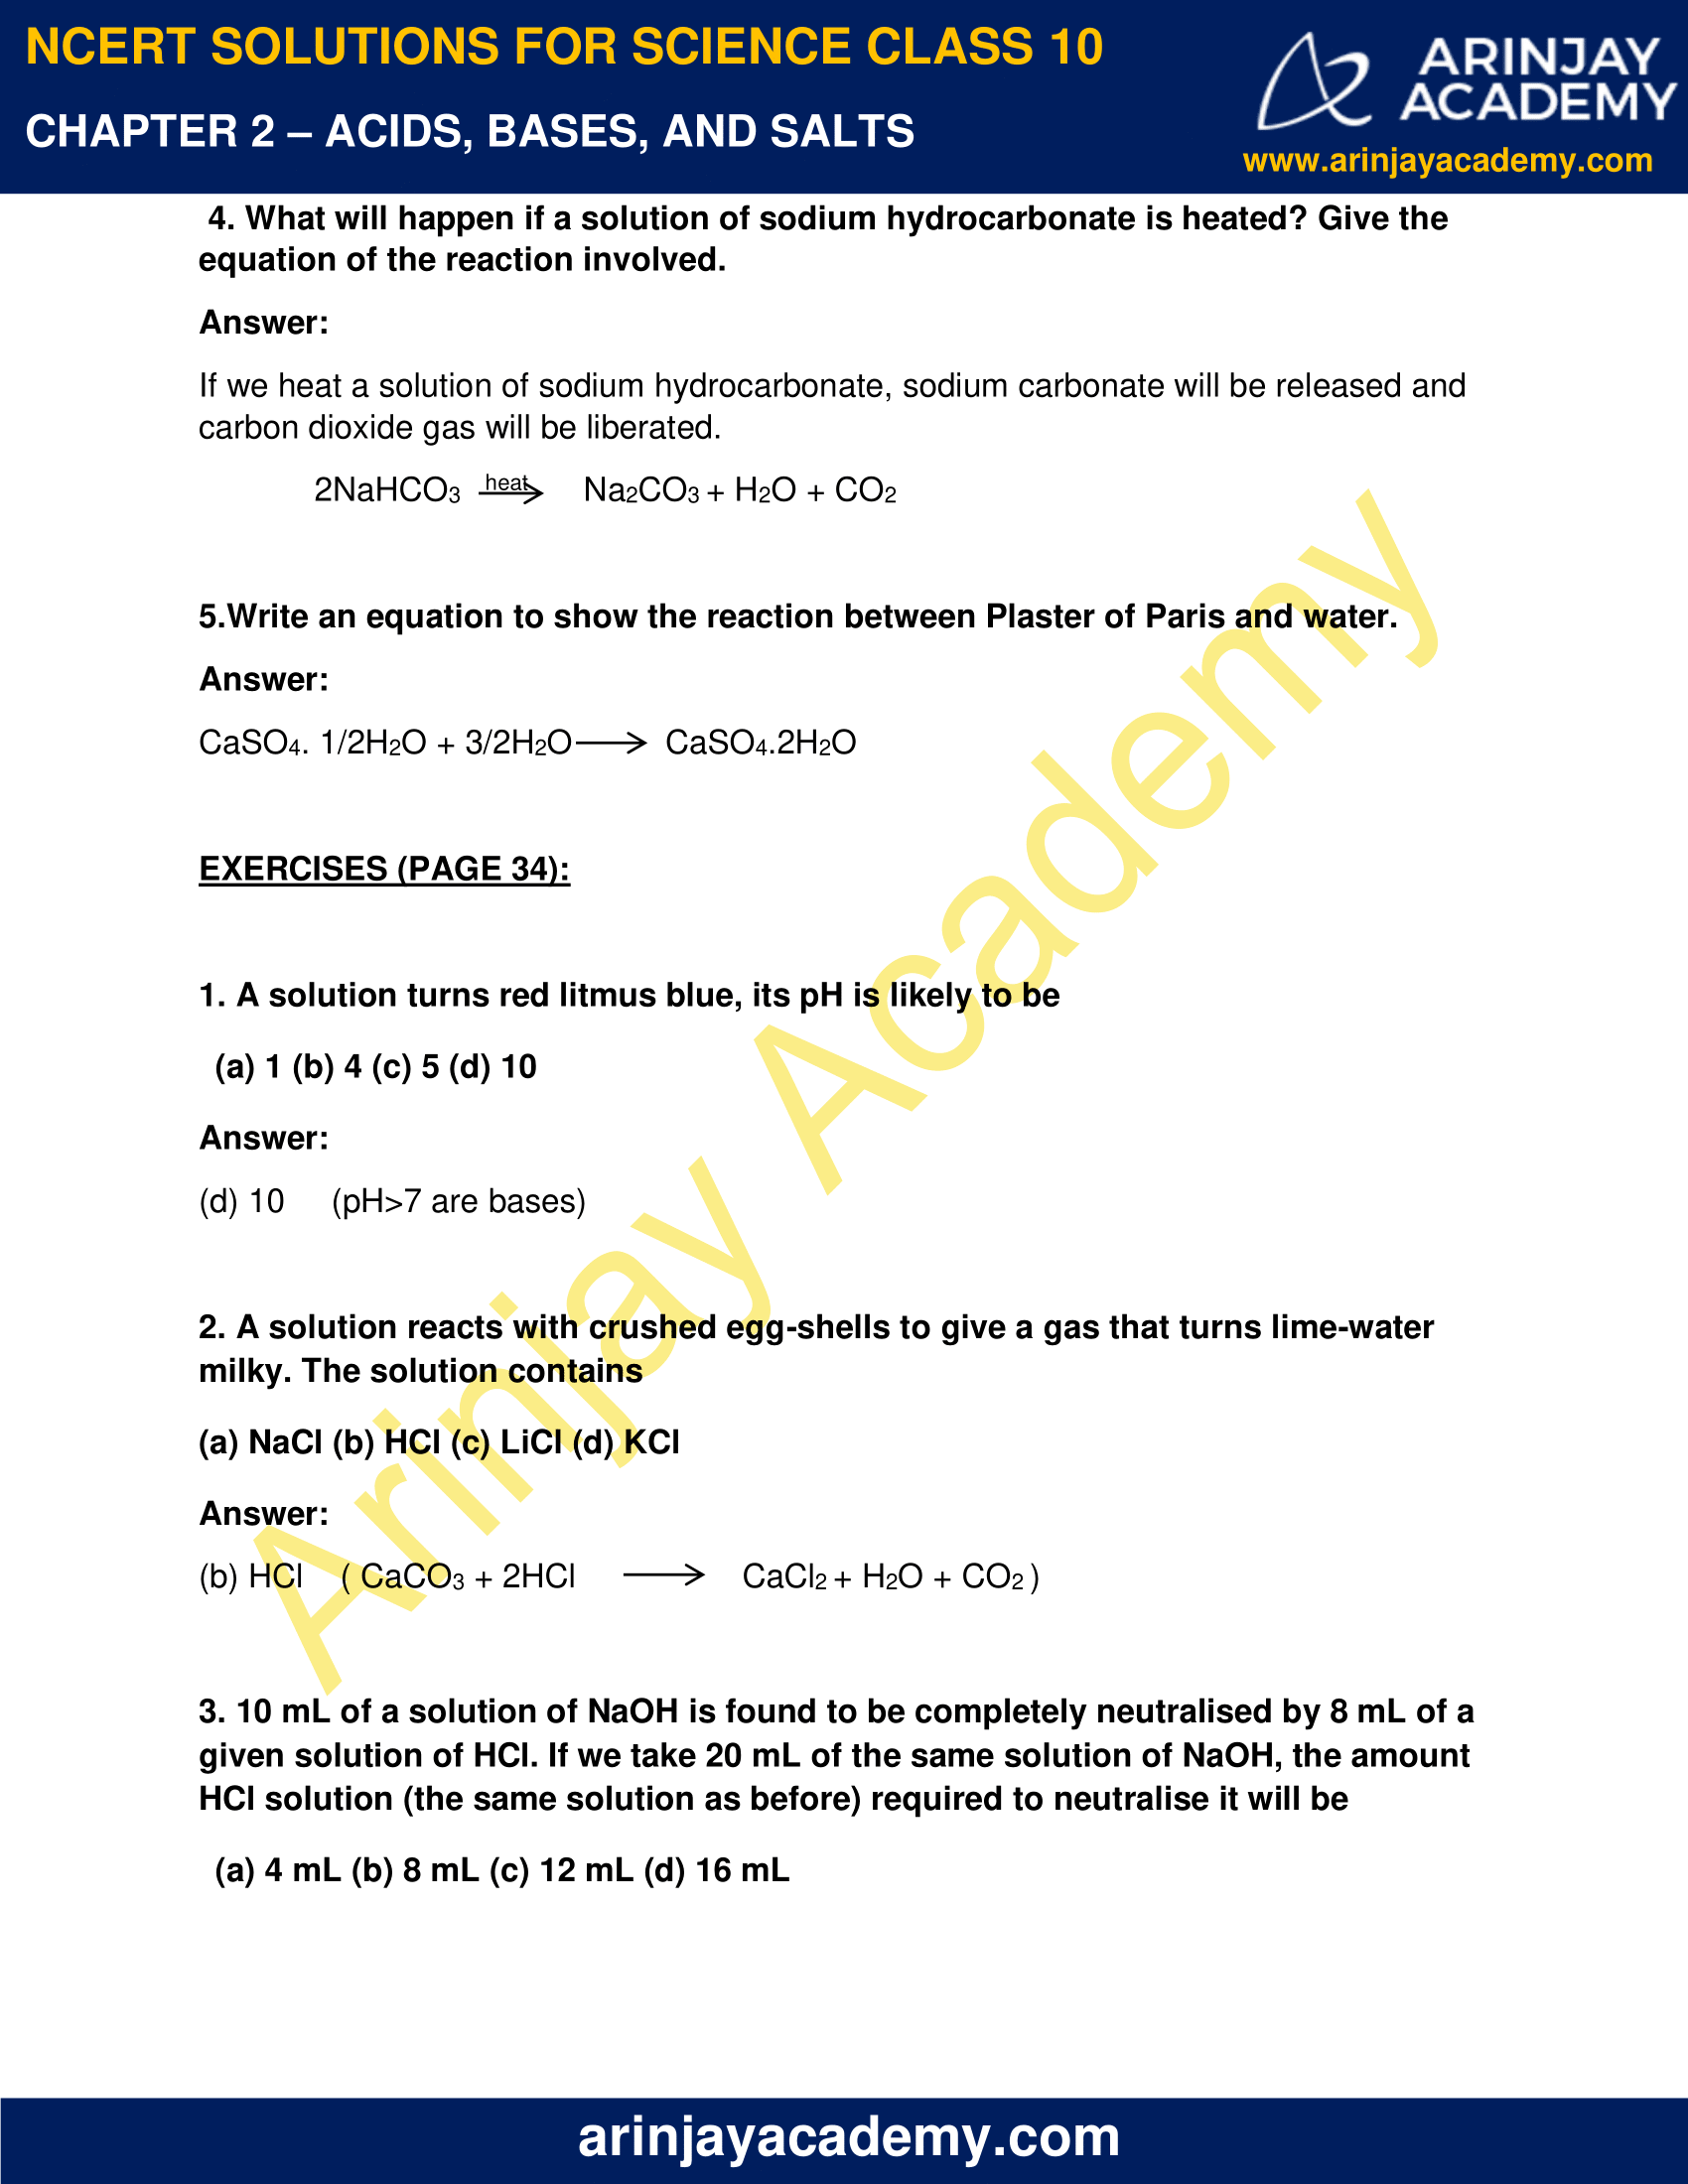 NCERT Solutions for Class 10 Science Chapter 2 image 5